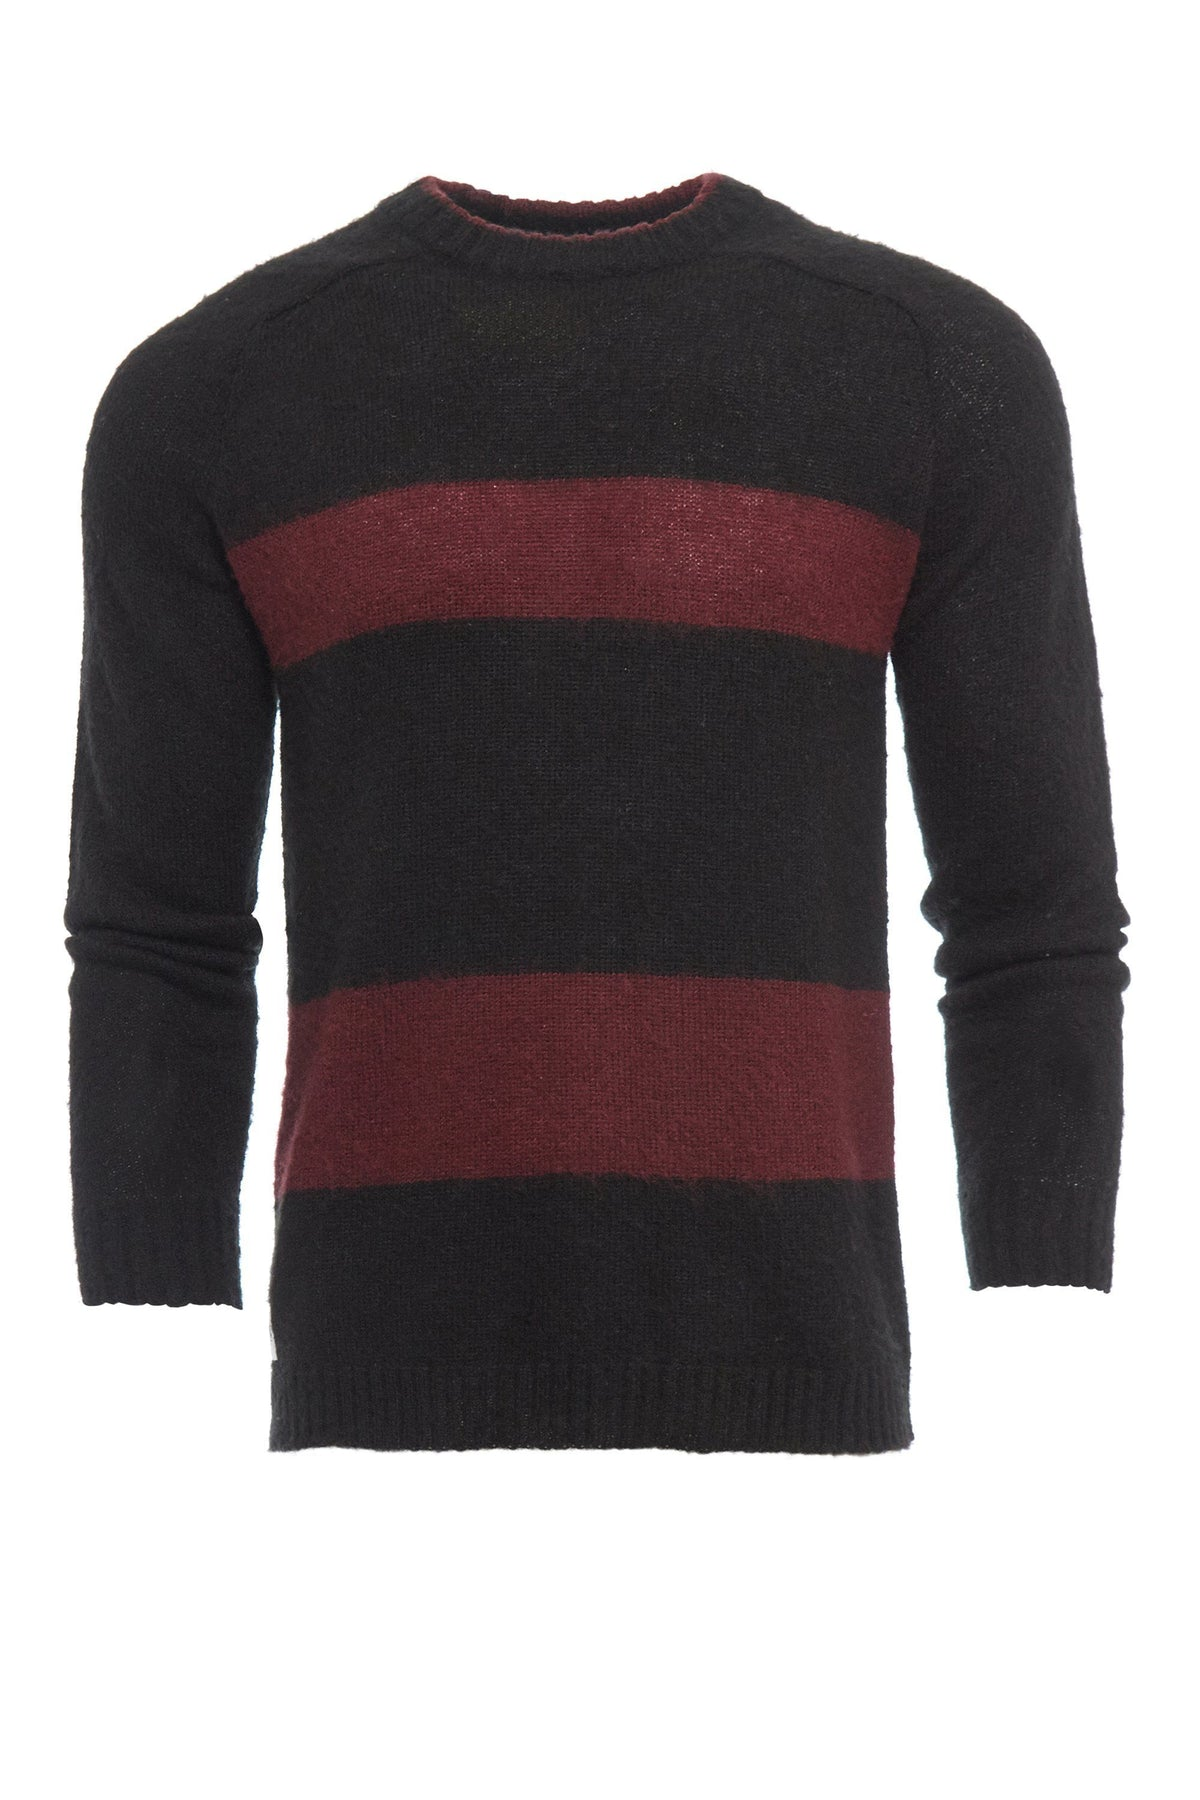 BERGHAIN KNIT SWEATER